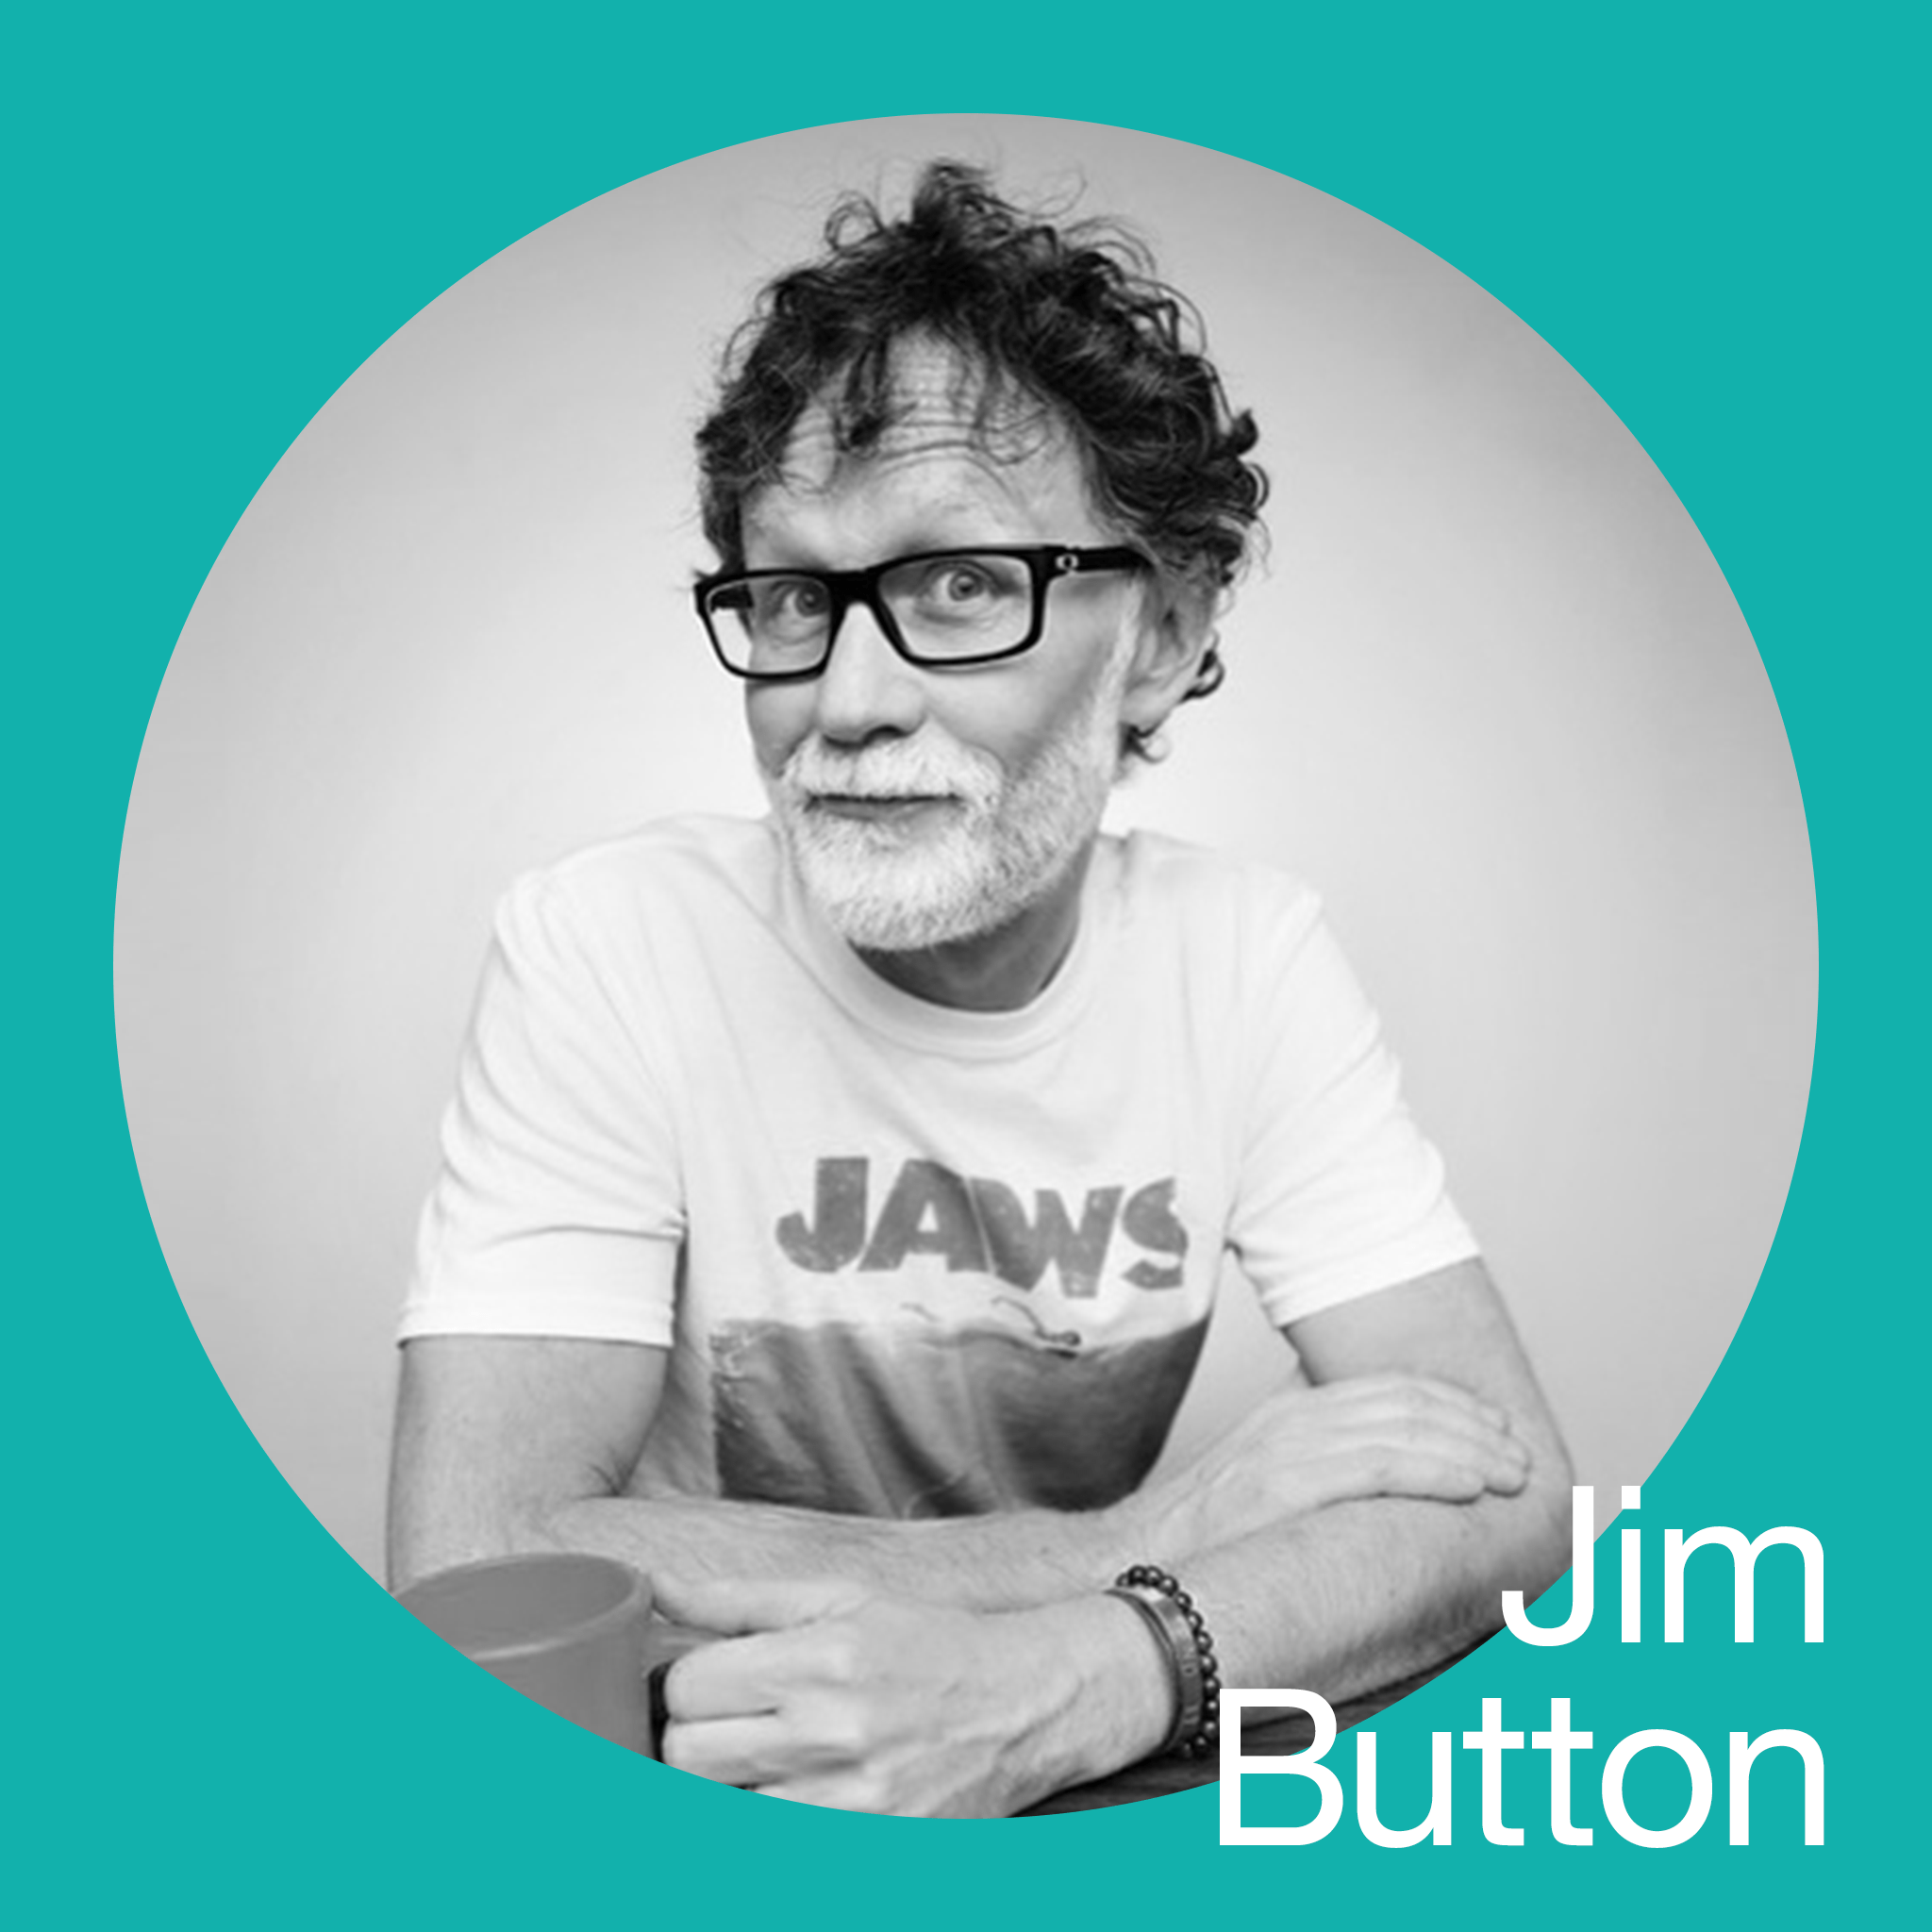 Jim Button | I am here. The question is why?